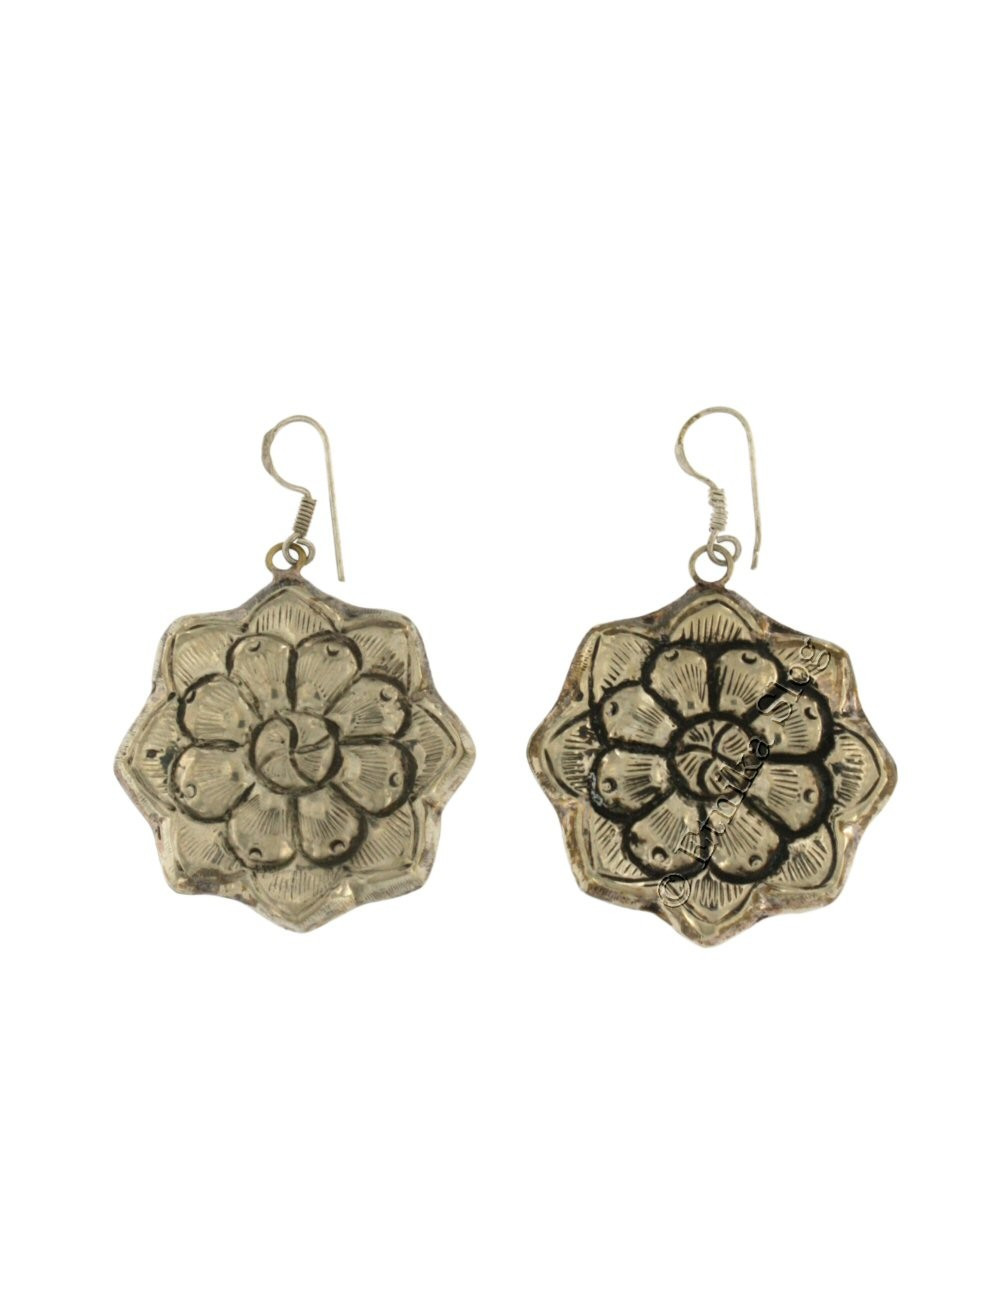 EARRINGS - METAL MB-ORNP13-06 - Etnika Slog d.o.o.